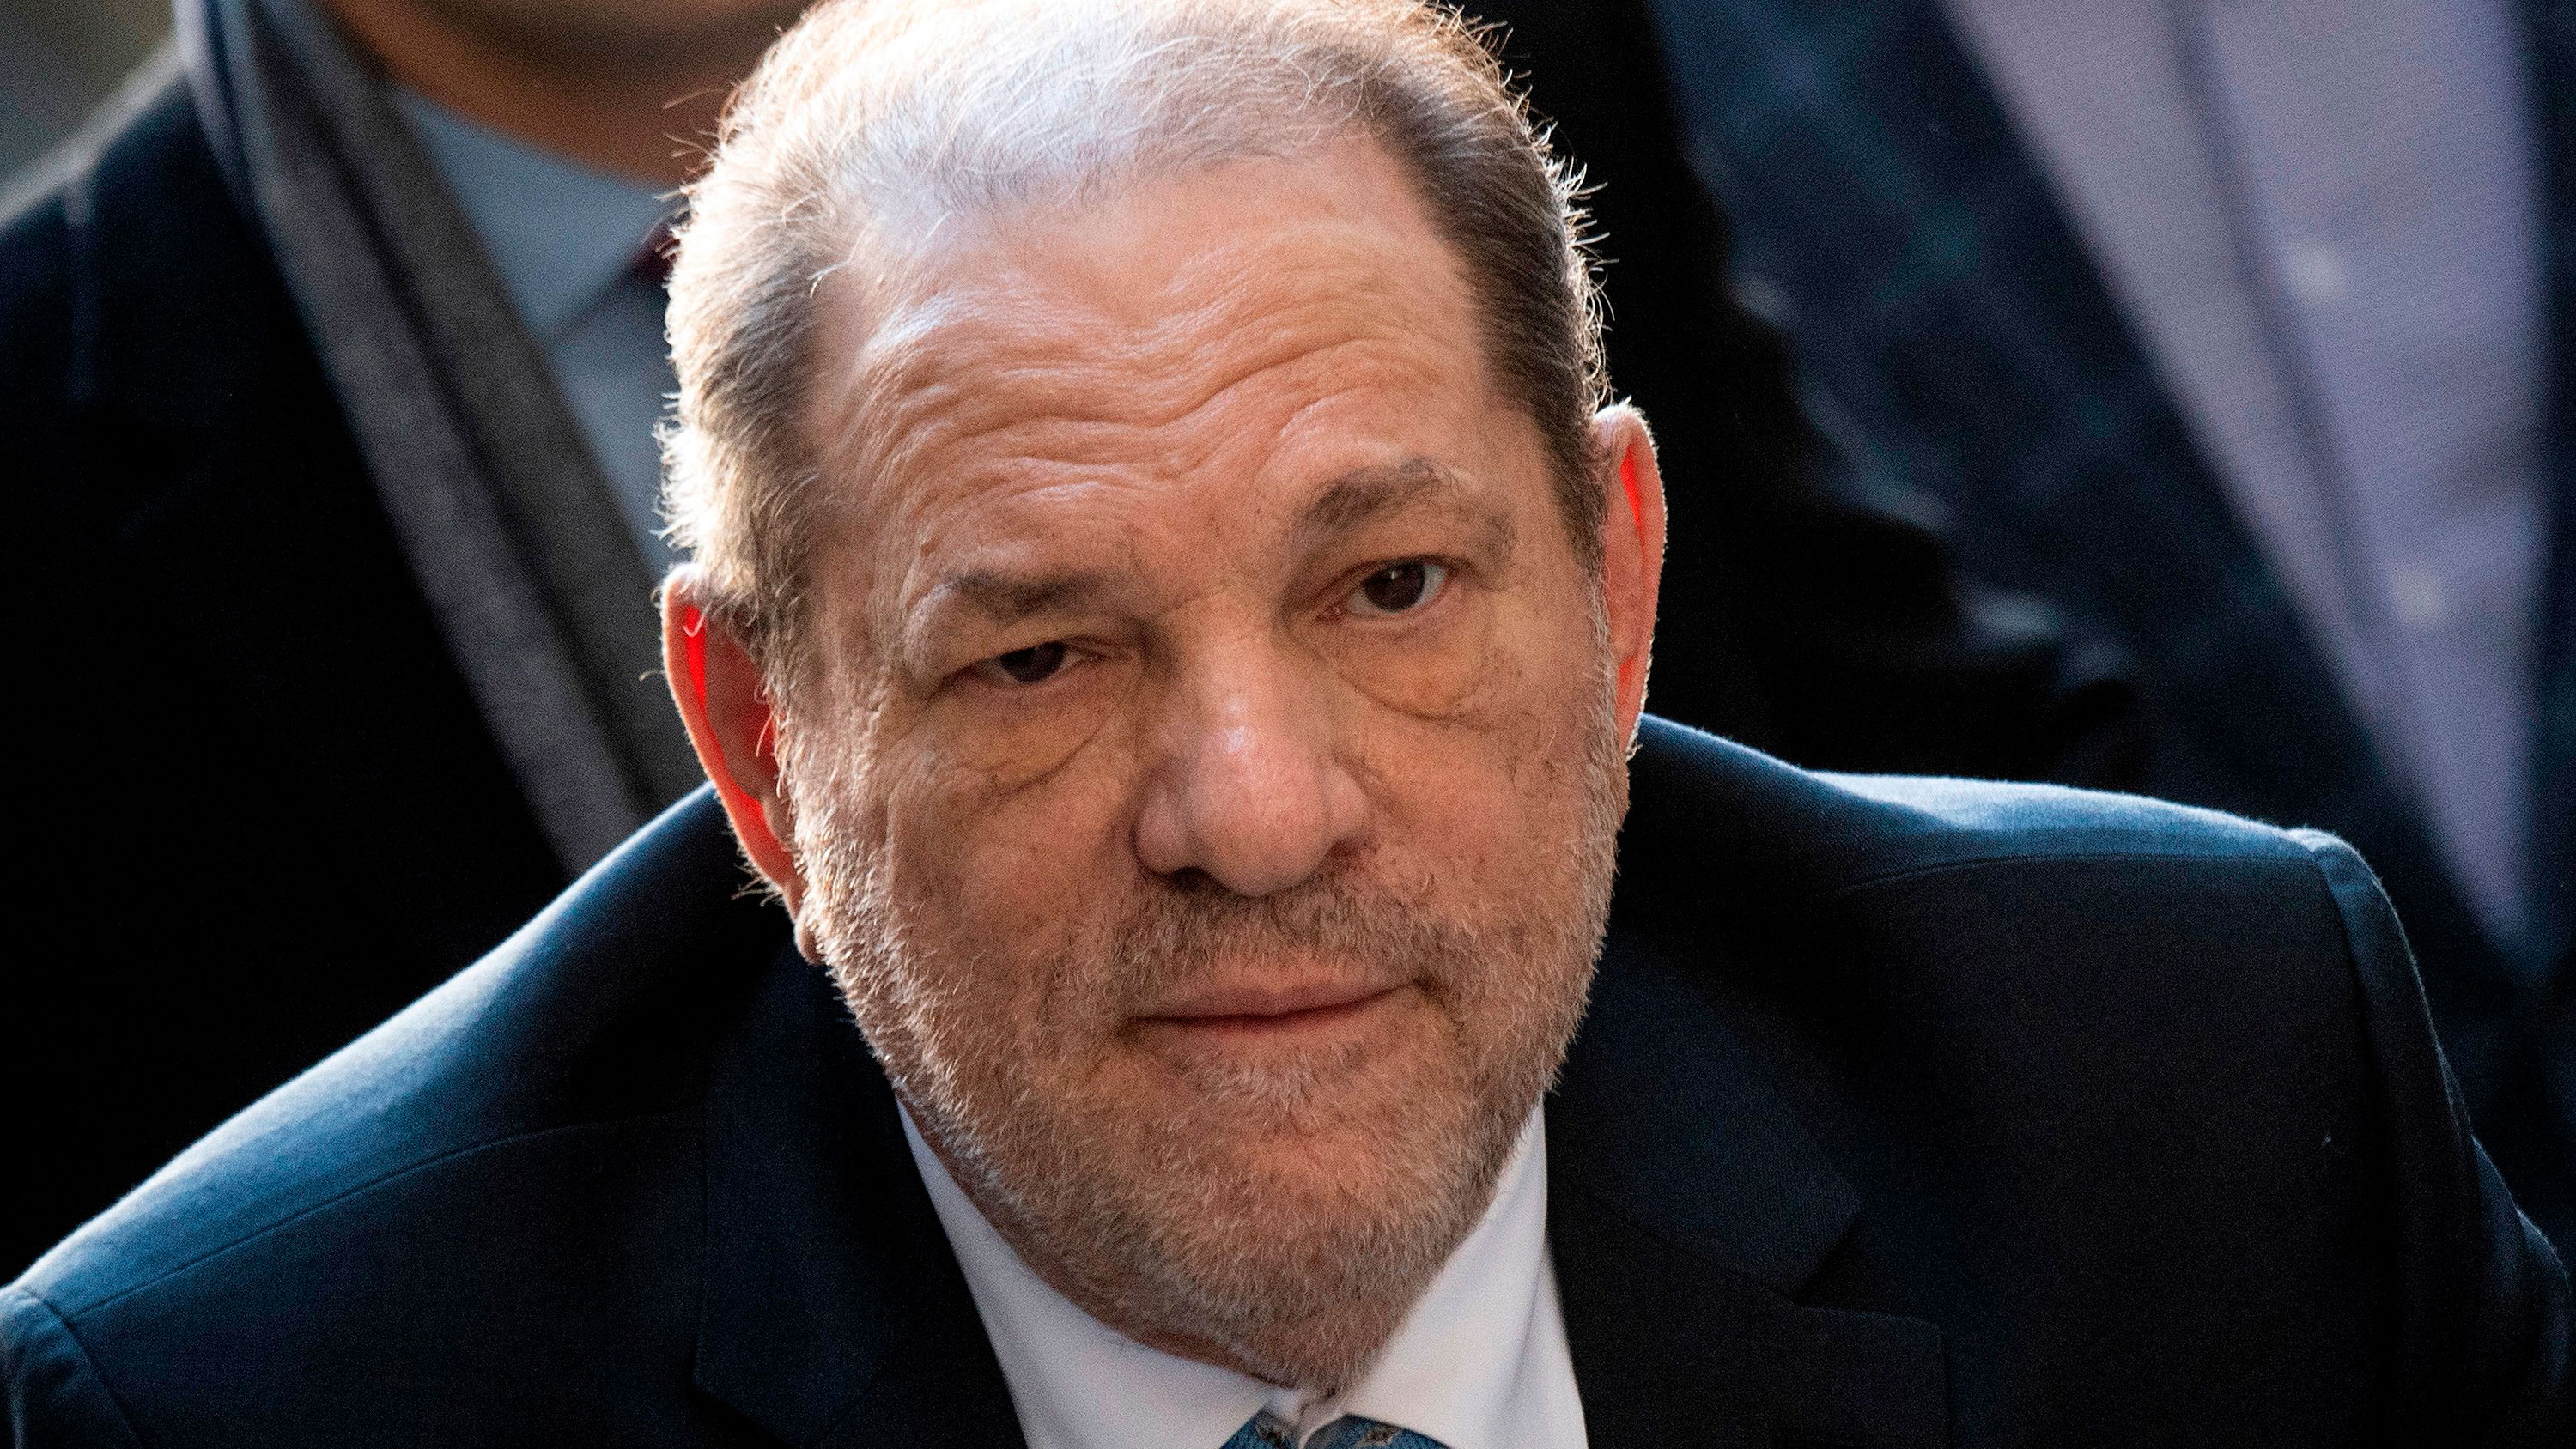 A new civil lawsuit alleges Harvey Weinstein raped a 17-year-old in the 1990s